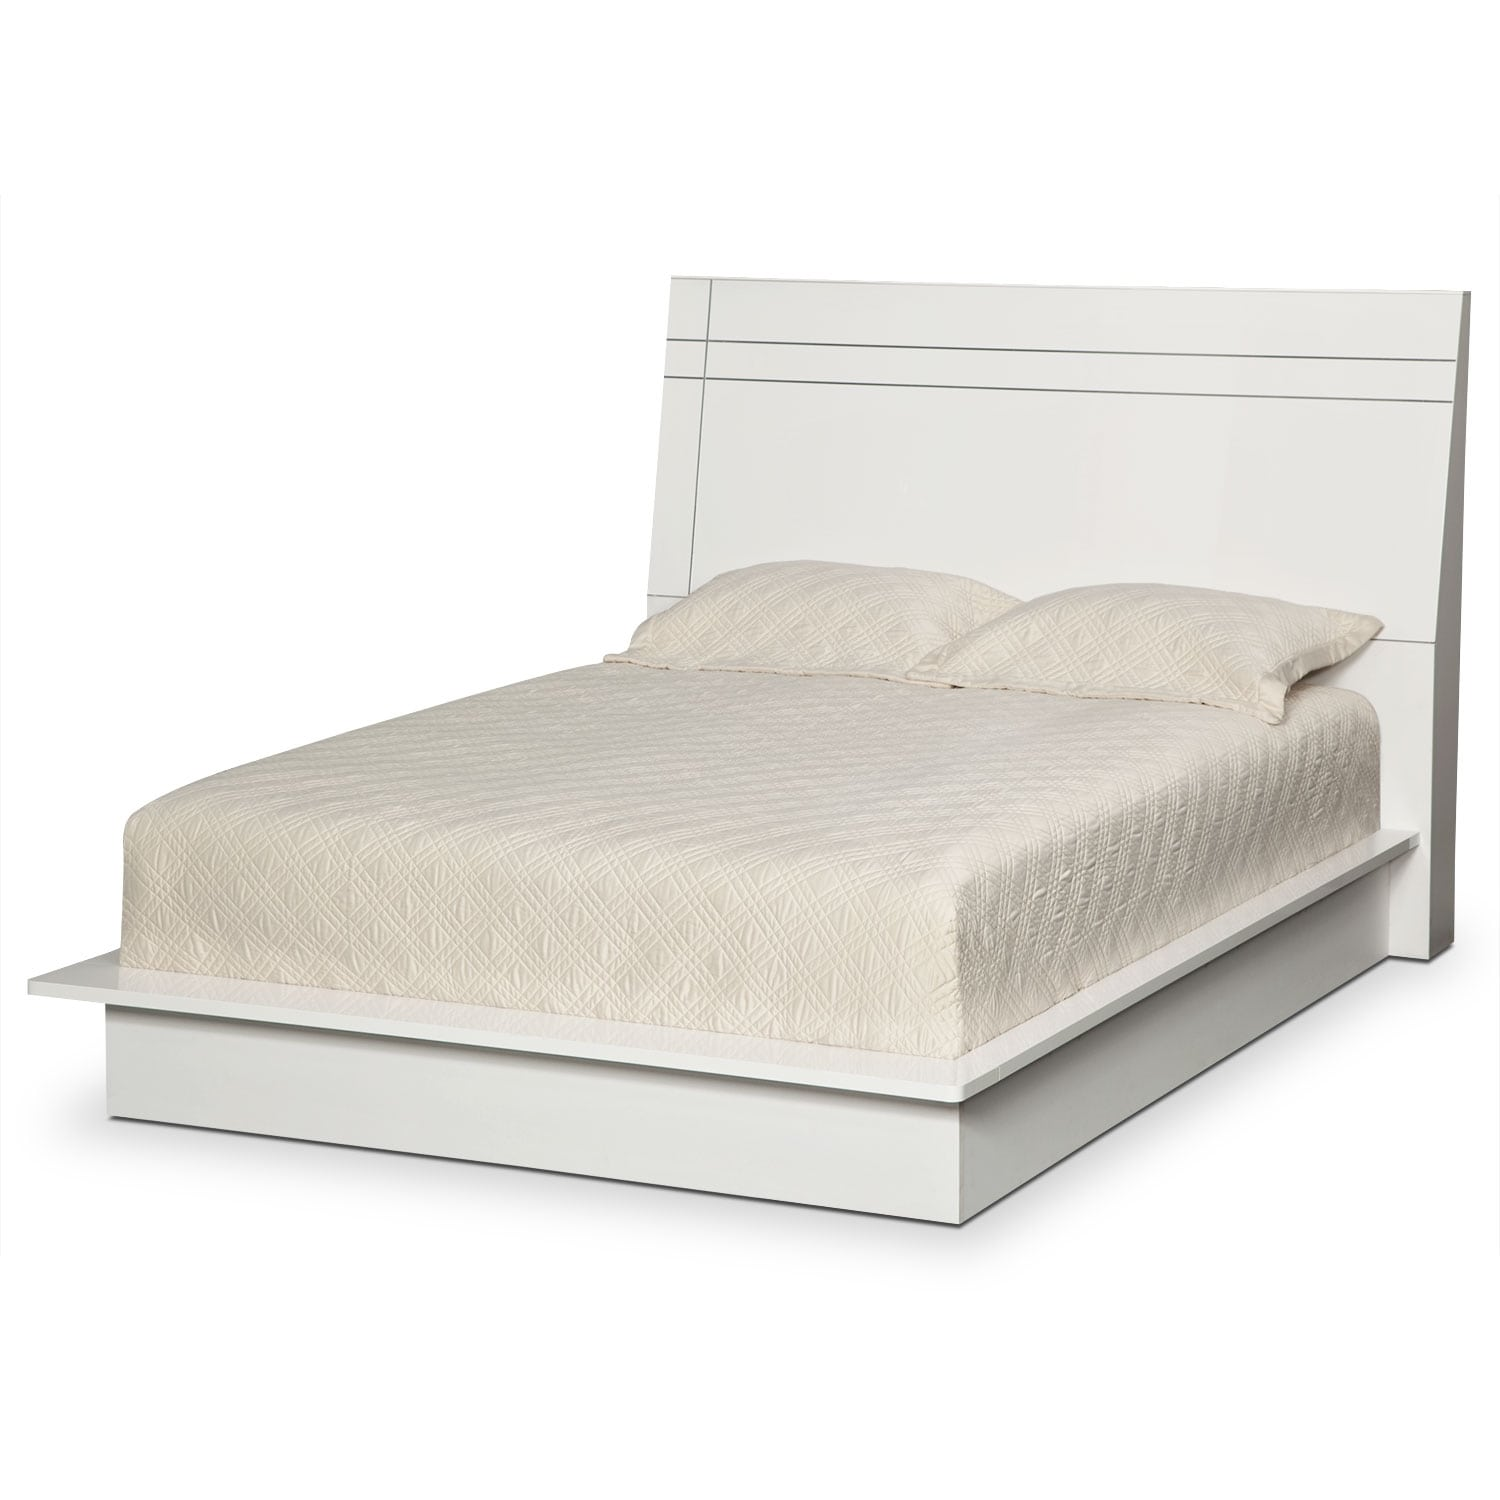 Dimora king panel bed white value city furniture for Panel bed mattress